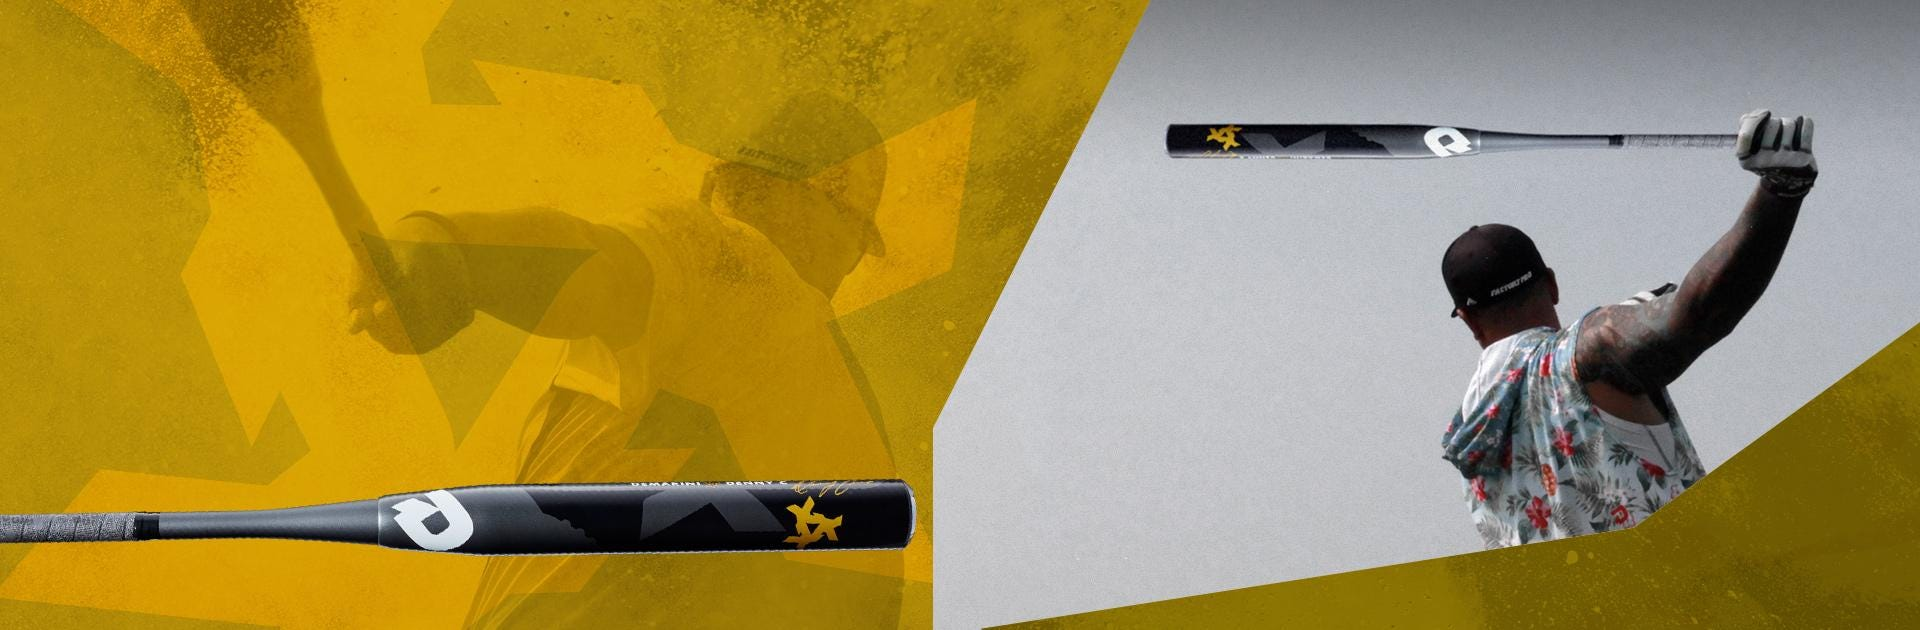 Banner image of bat and player swinging